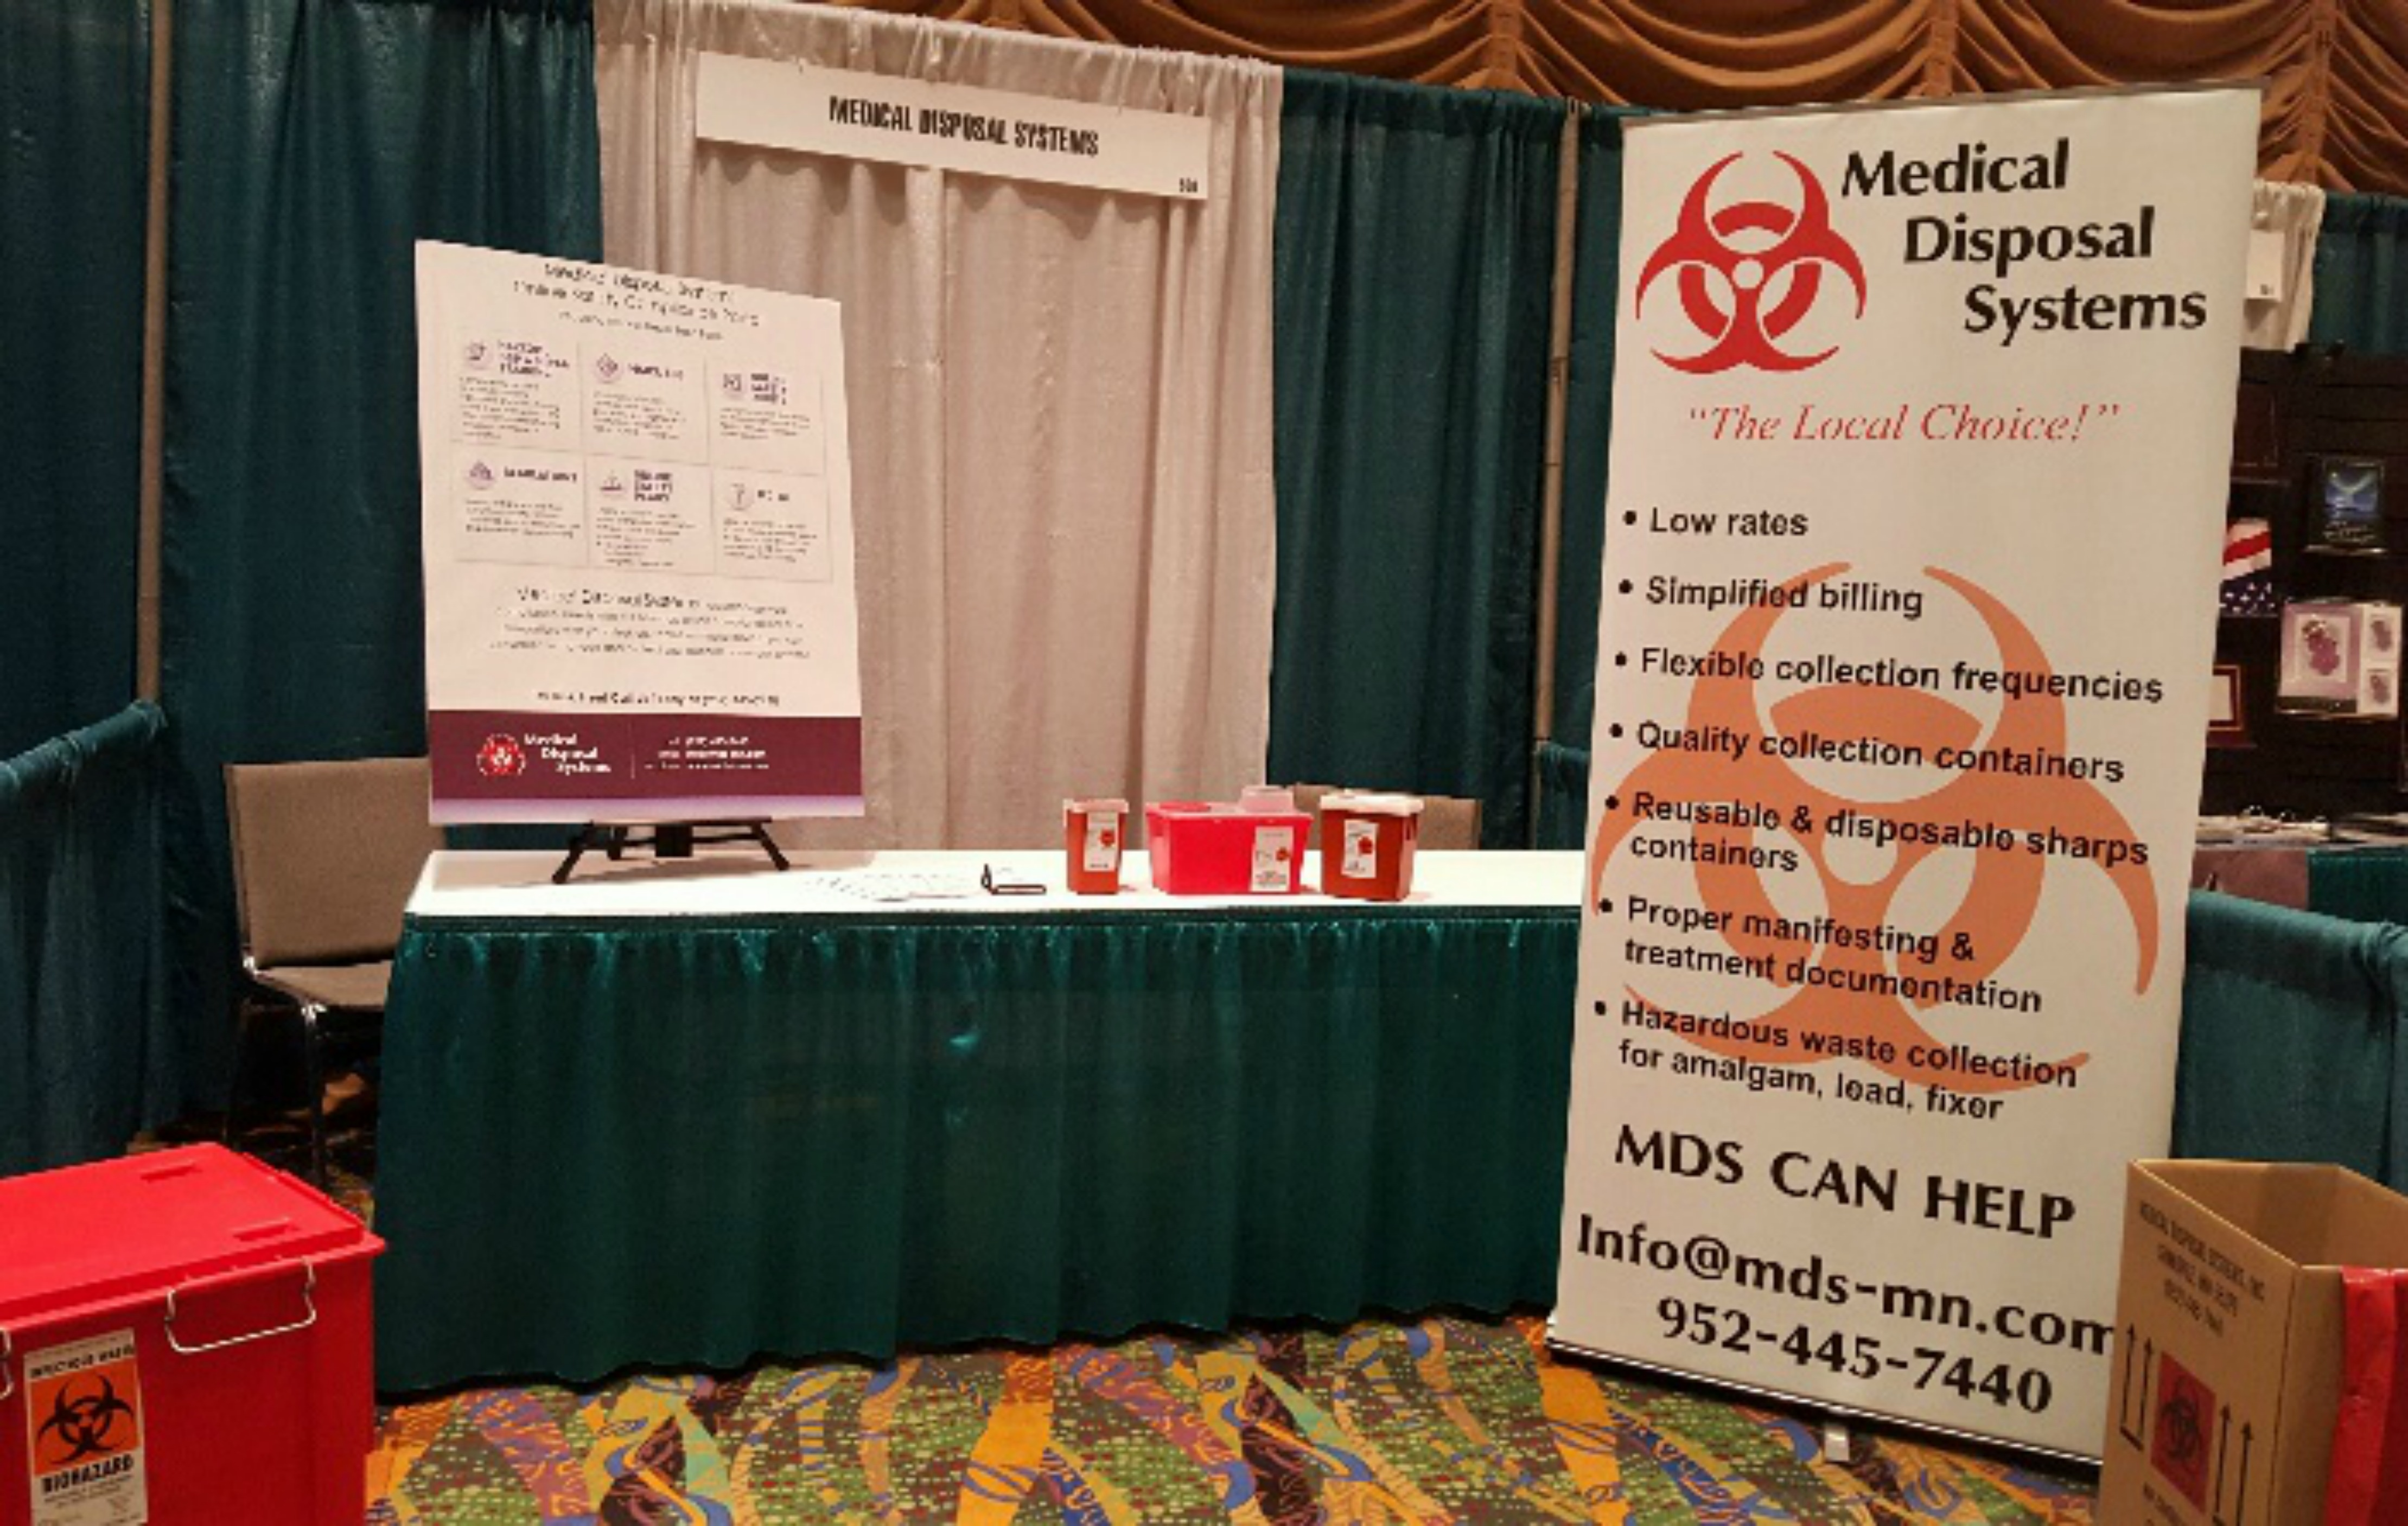 Medical Disposal Systems image 3